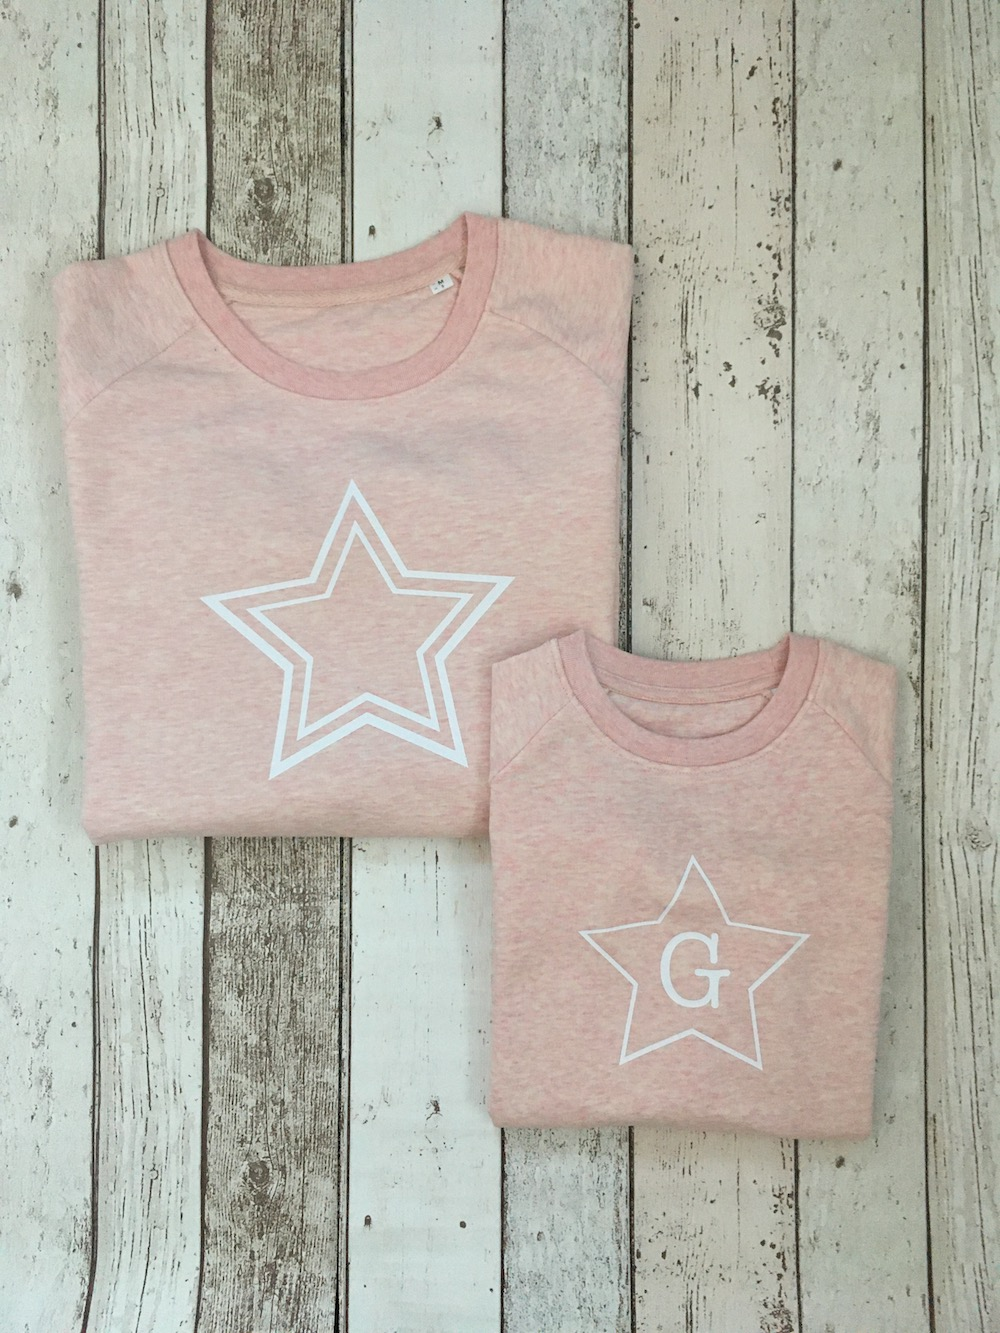 Star Super Soft Personalised Sweatshirt Set – Heather Pink